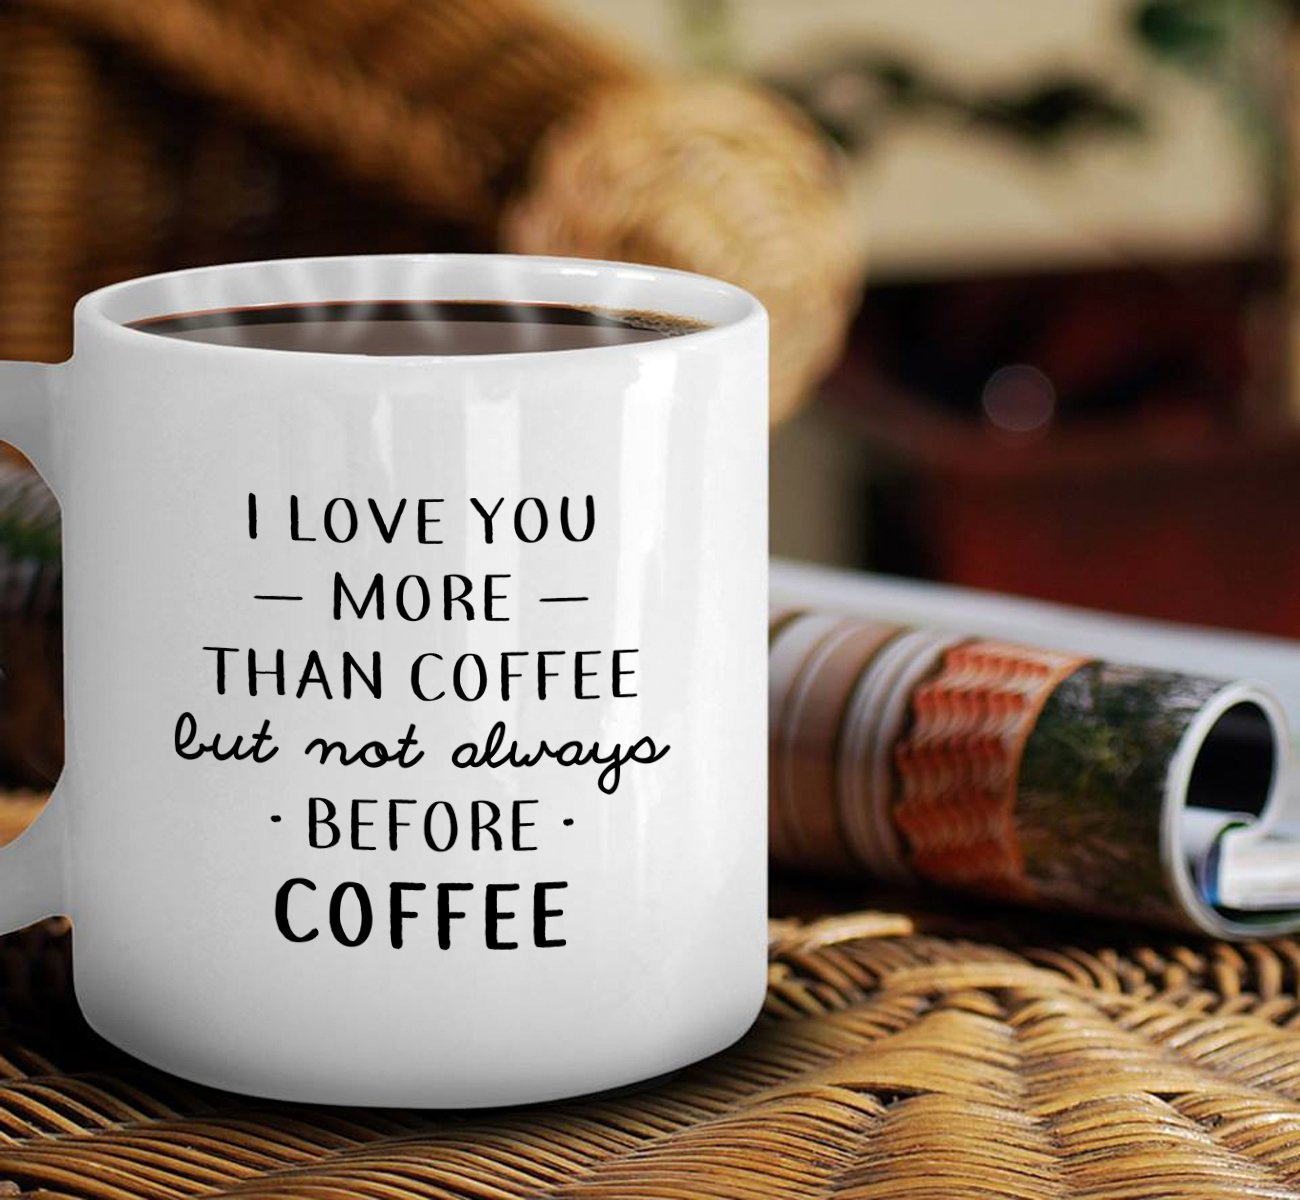 I Love You More Than Coffee: I Love You More Than Coffee But Not Always